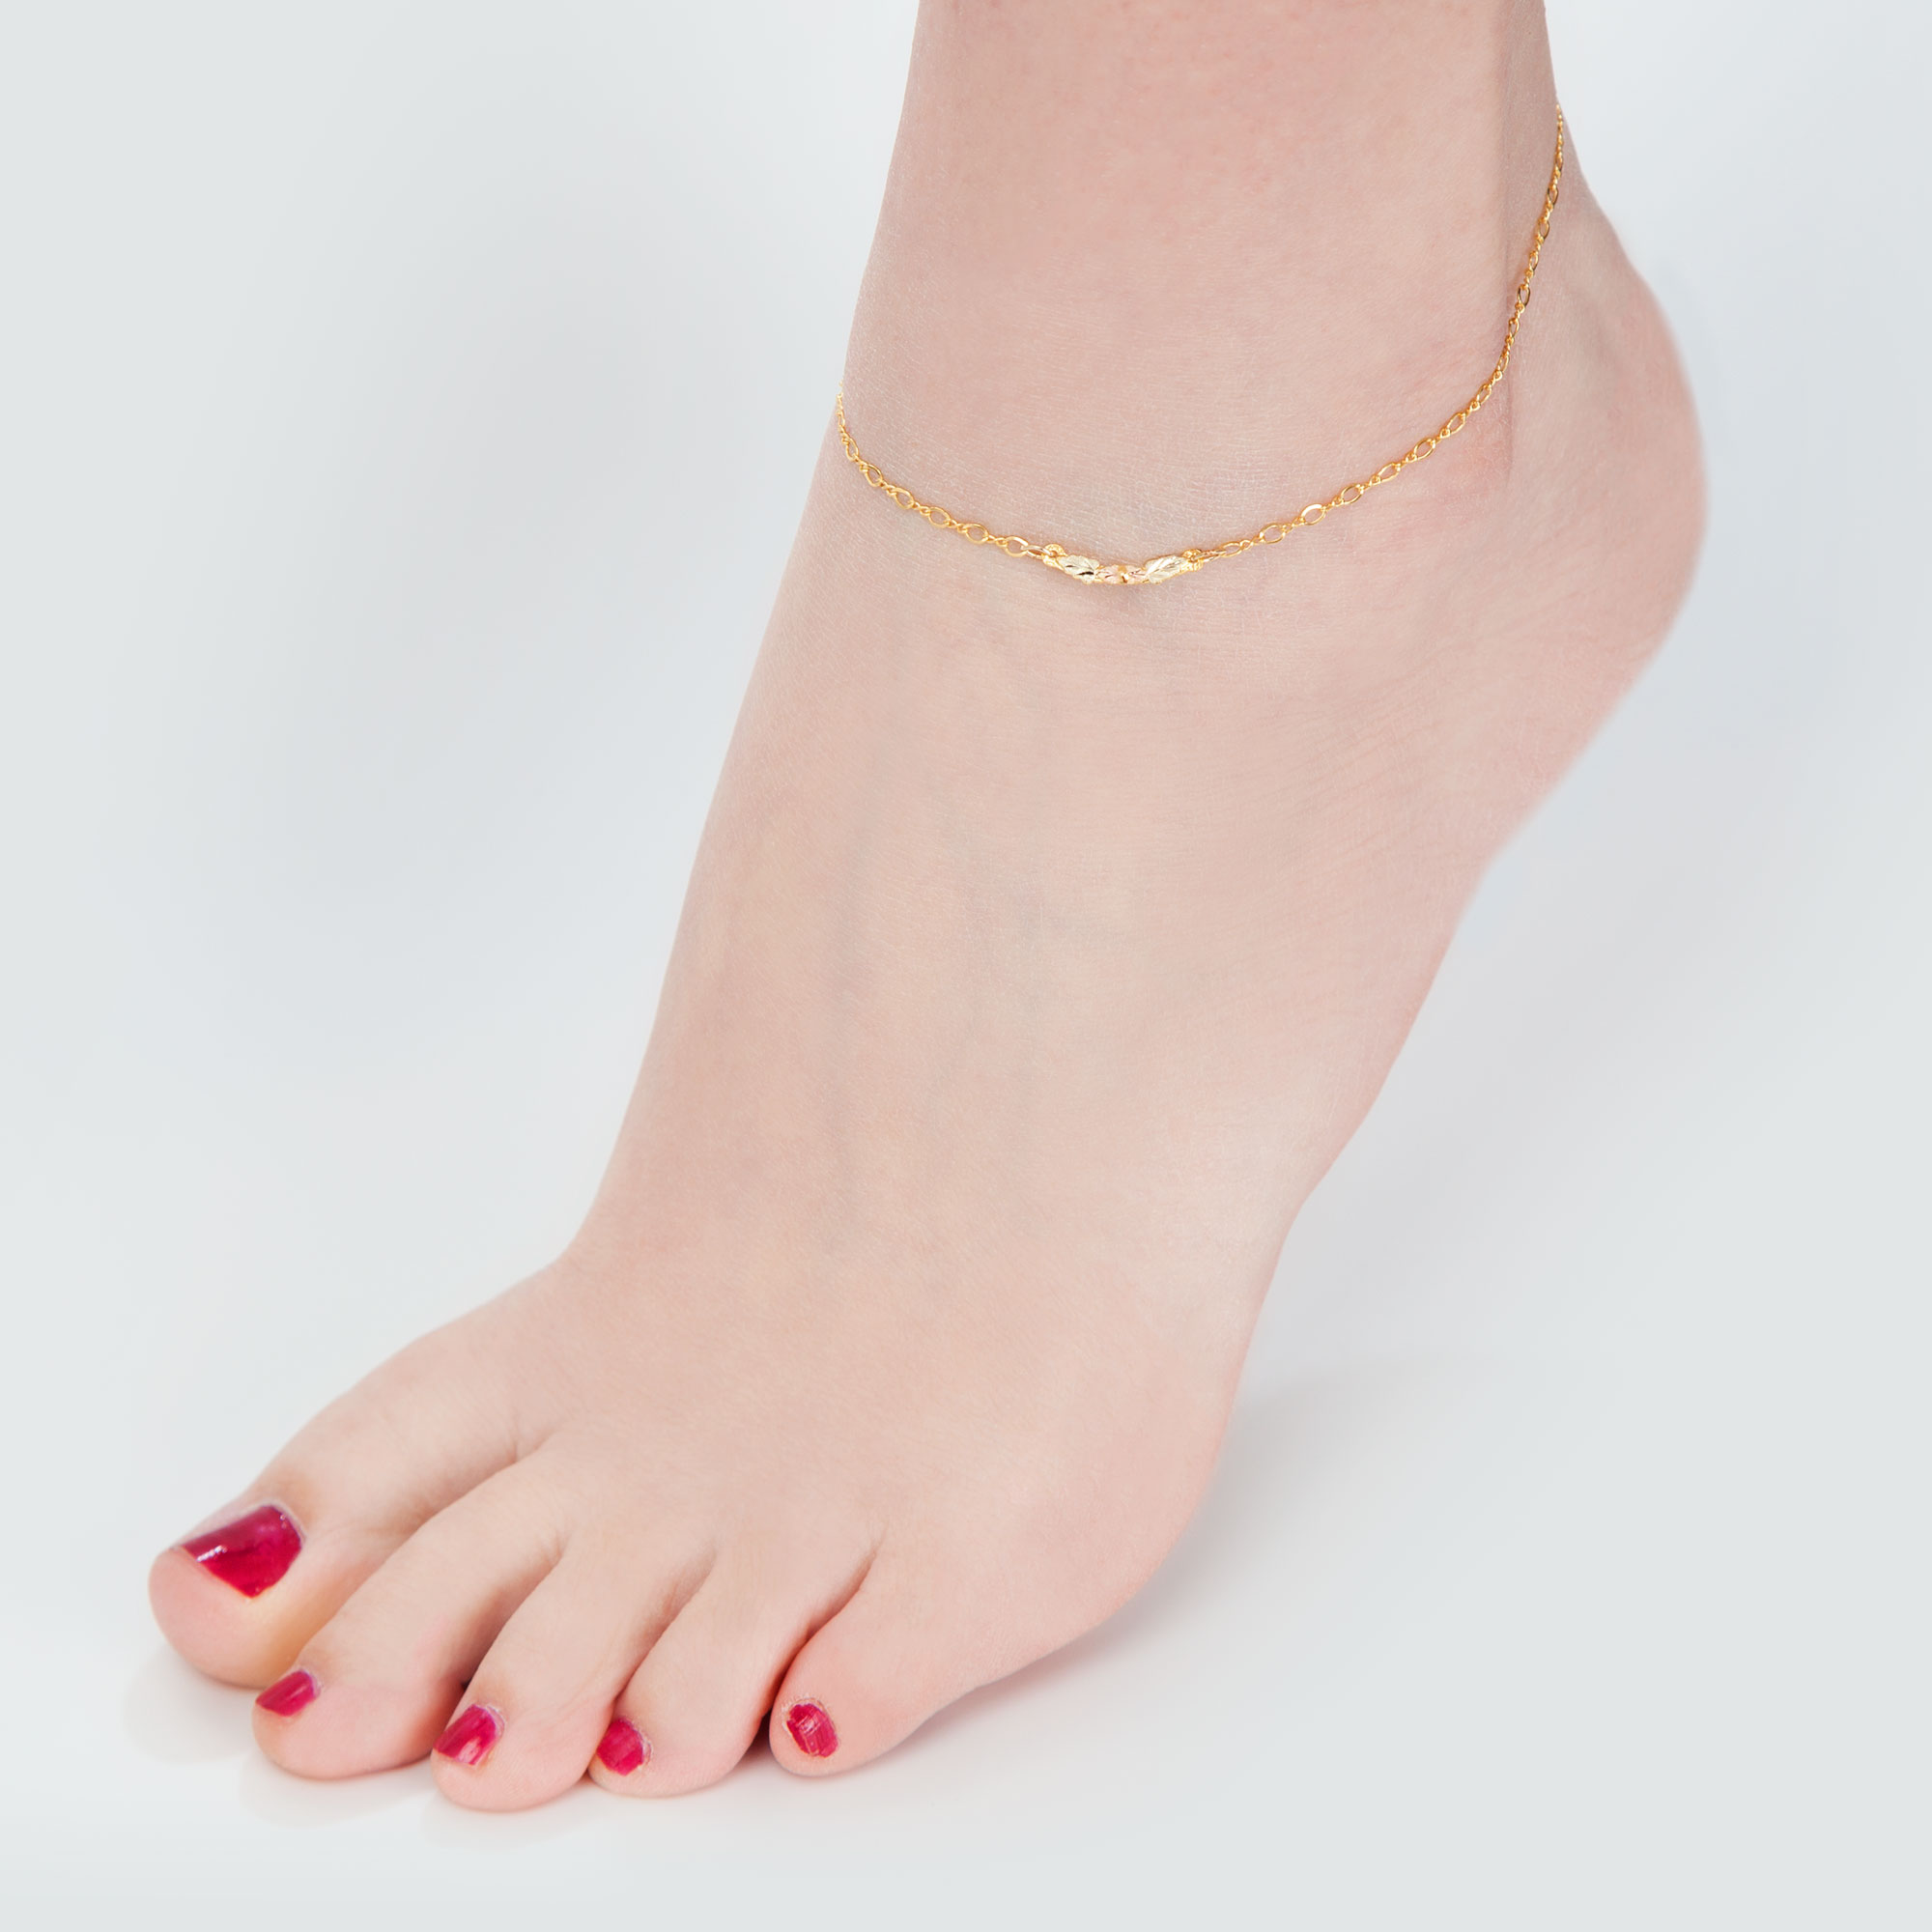 ella jewelry anklet bracelets ankle kylie shopcdahl popular gold dahl products bracelet img c